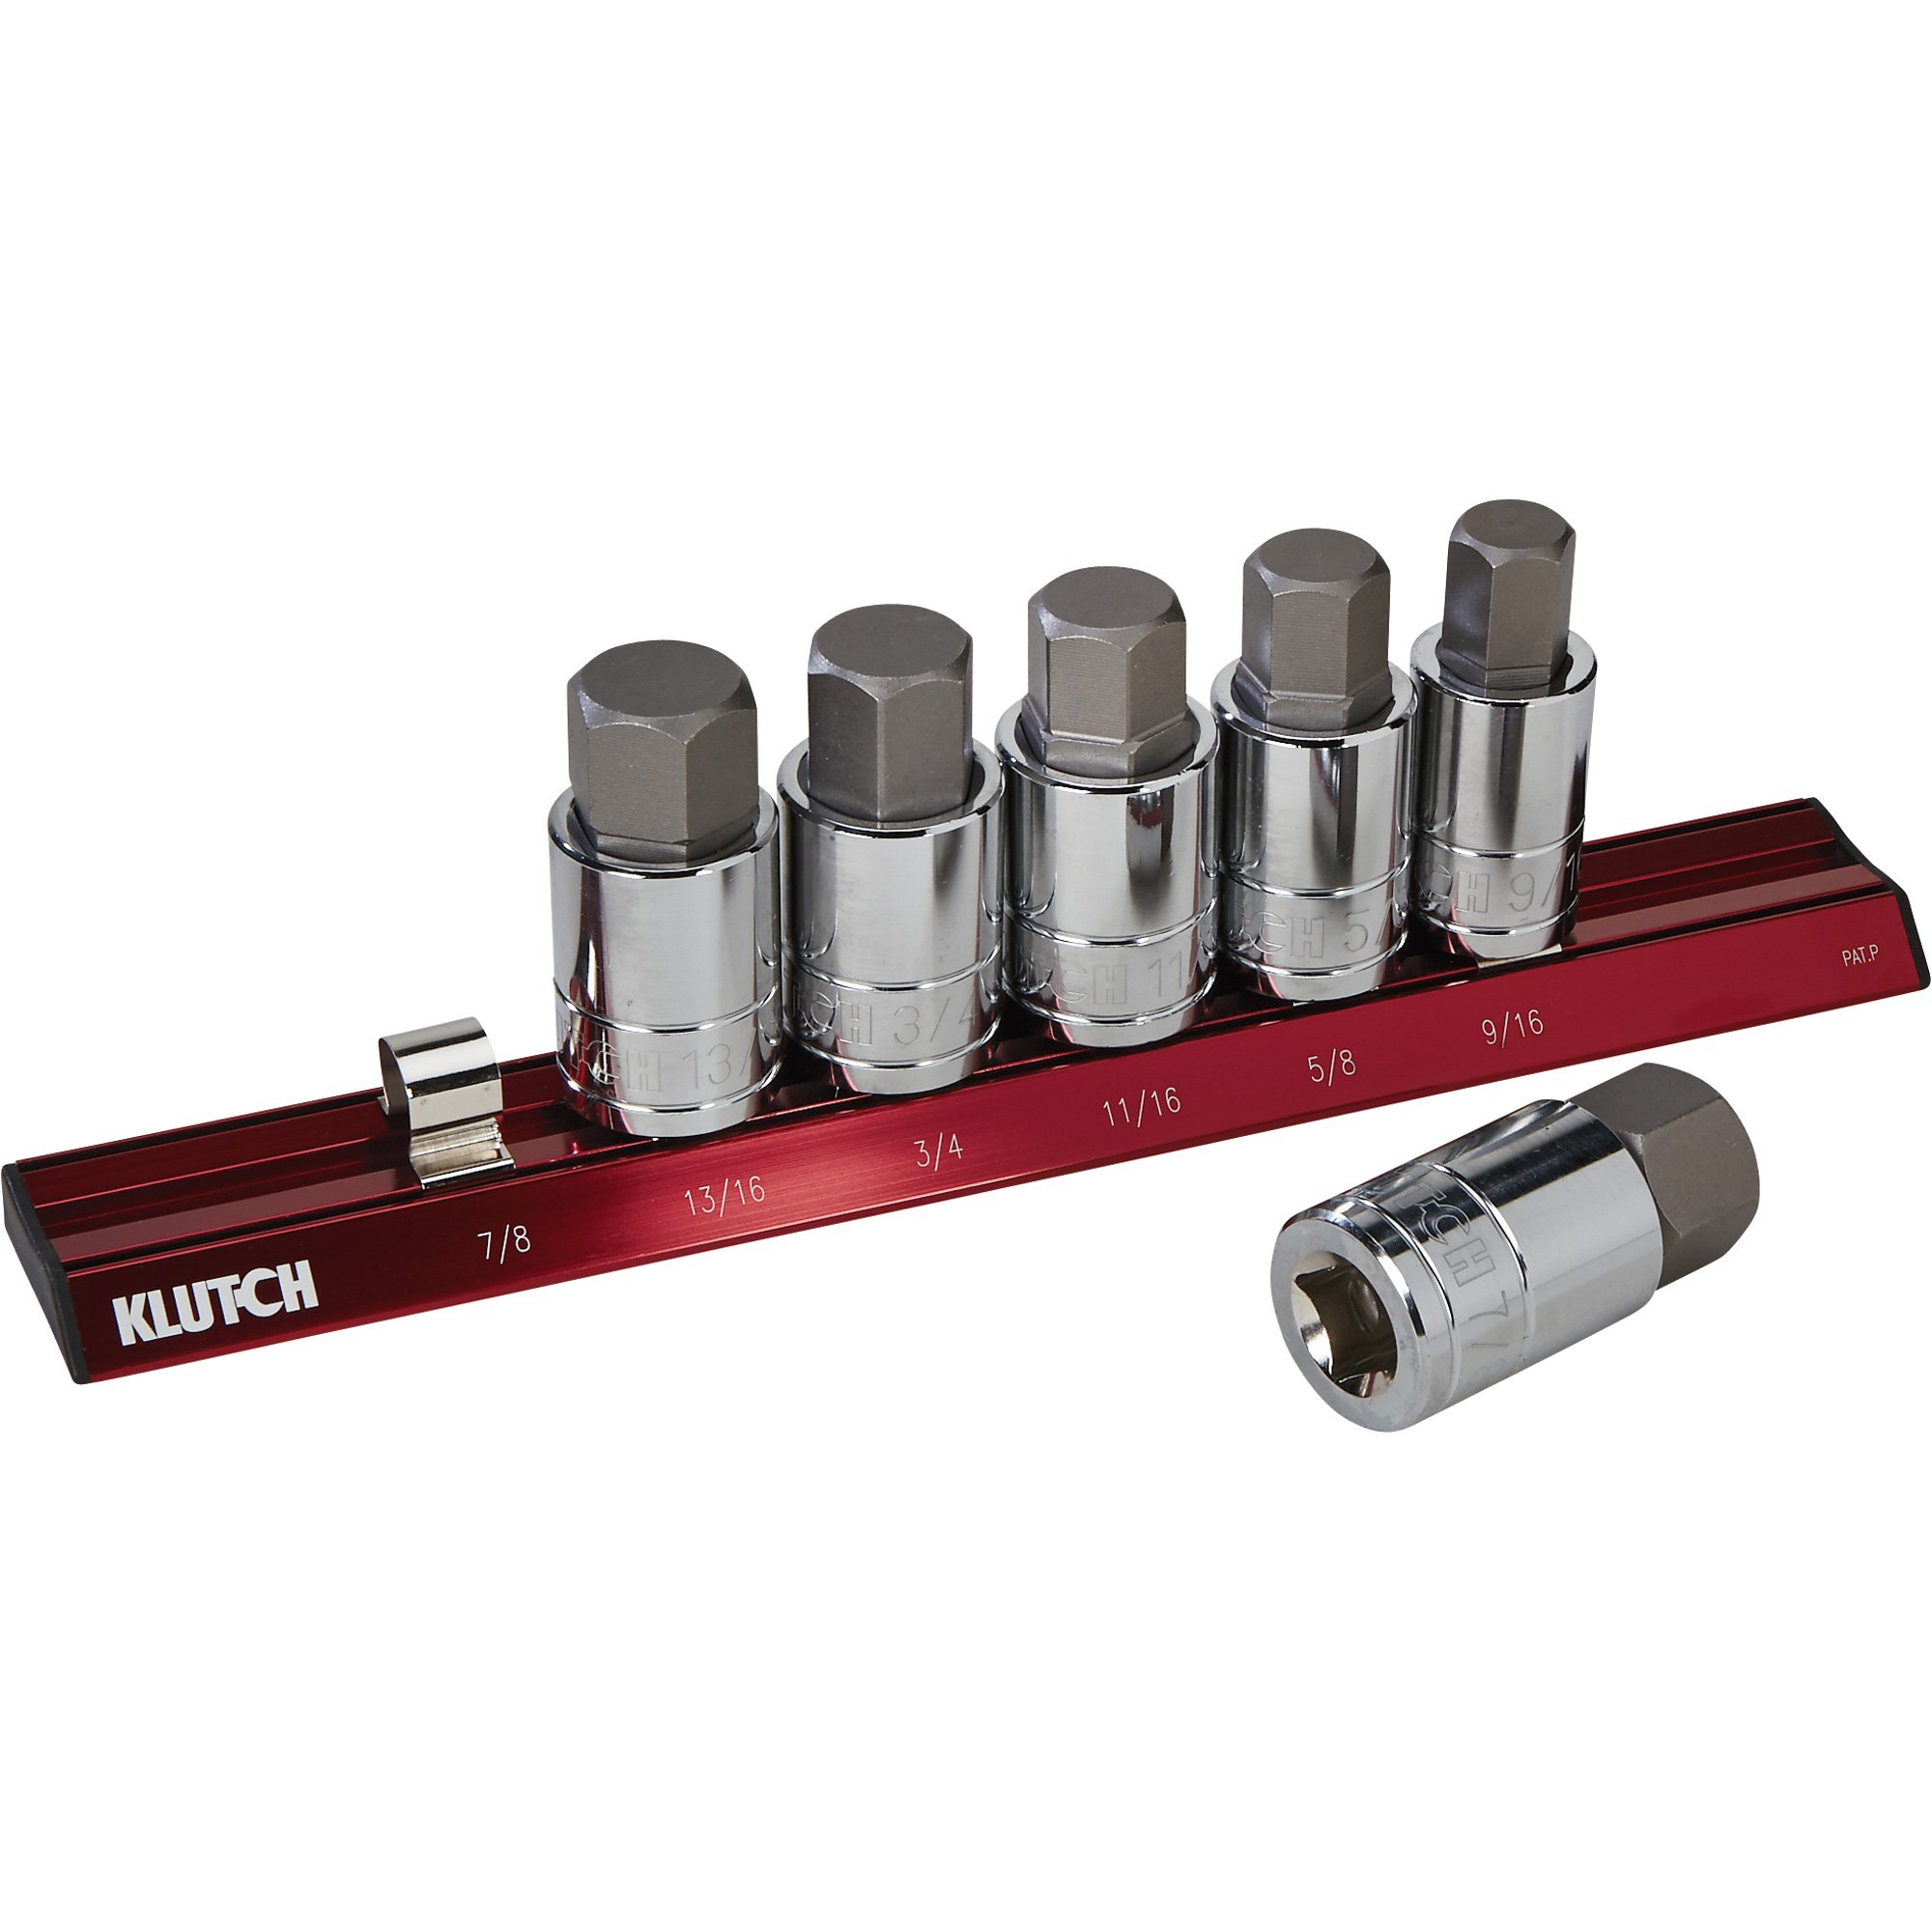 Klutch SAE Hex Bit Socket Set - 6-Pc.